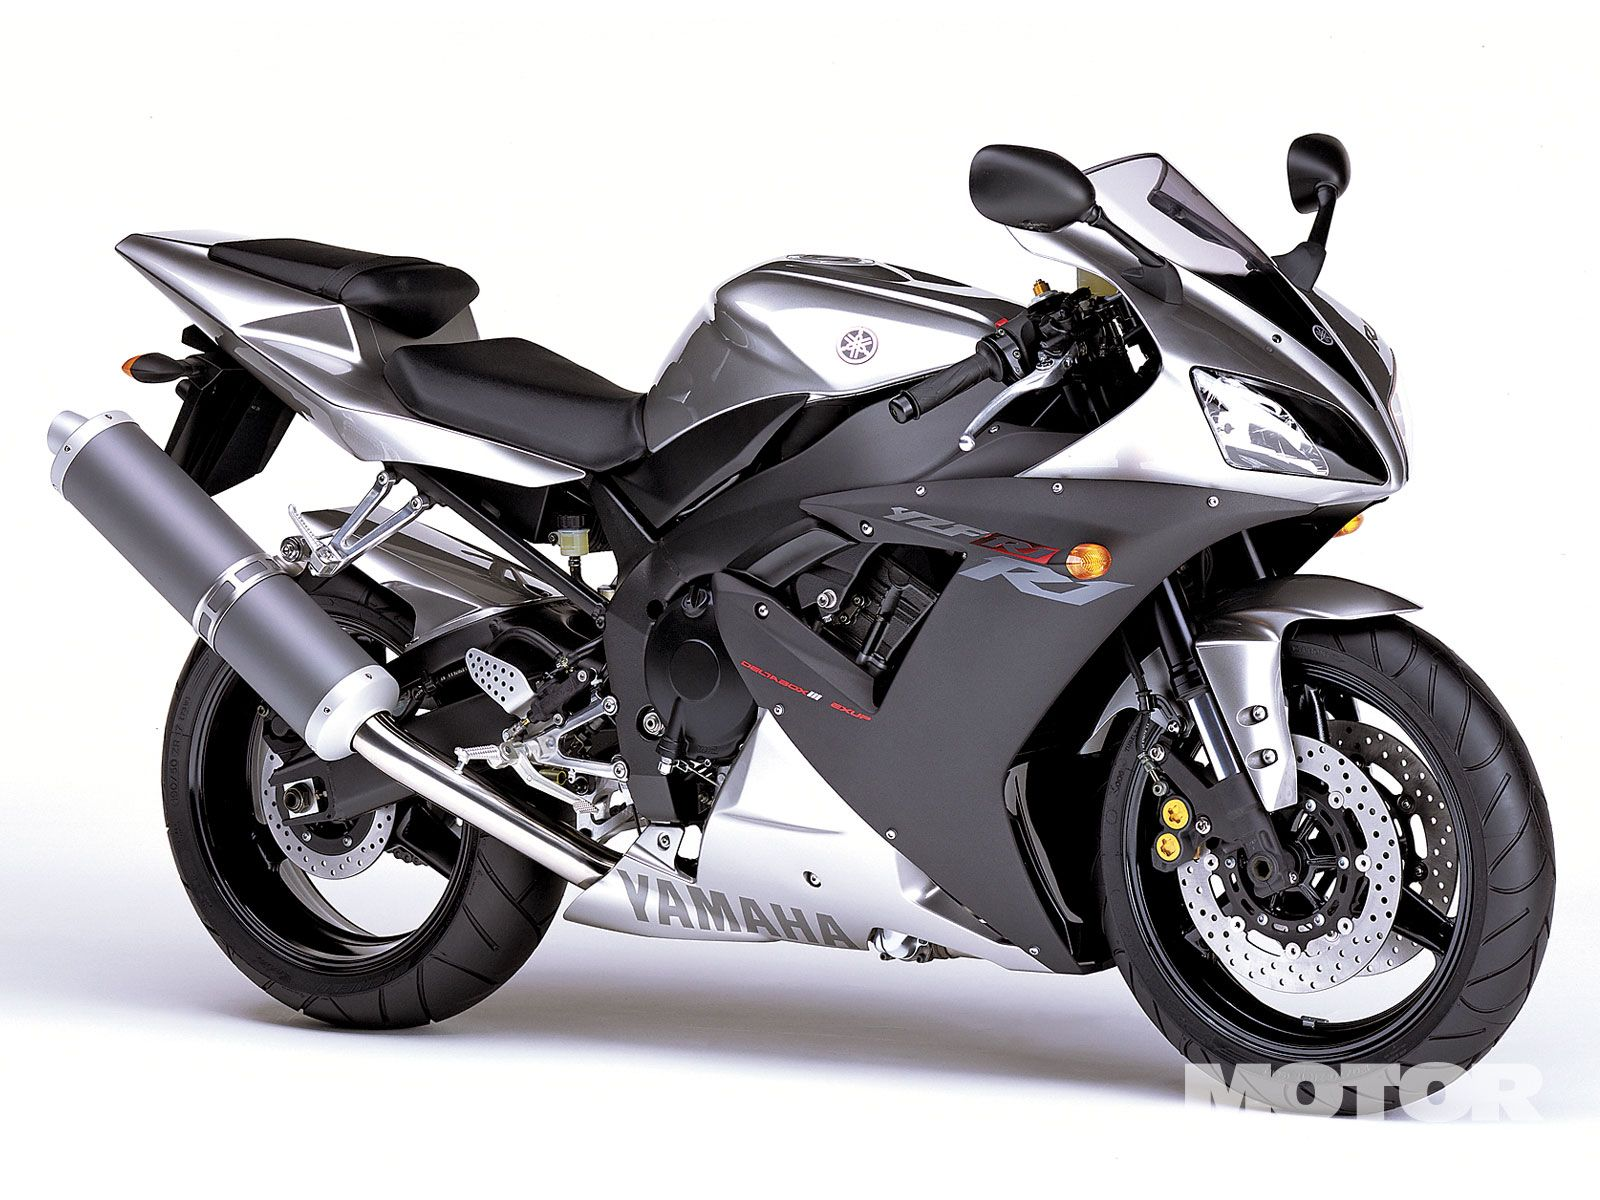 yamaha r1 2002 yamaha yzf r1 right side view wild wolf. Black Bedroom Furniture Sets. Home Design Ideas